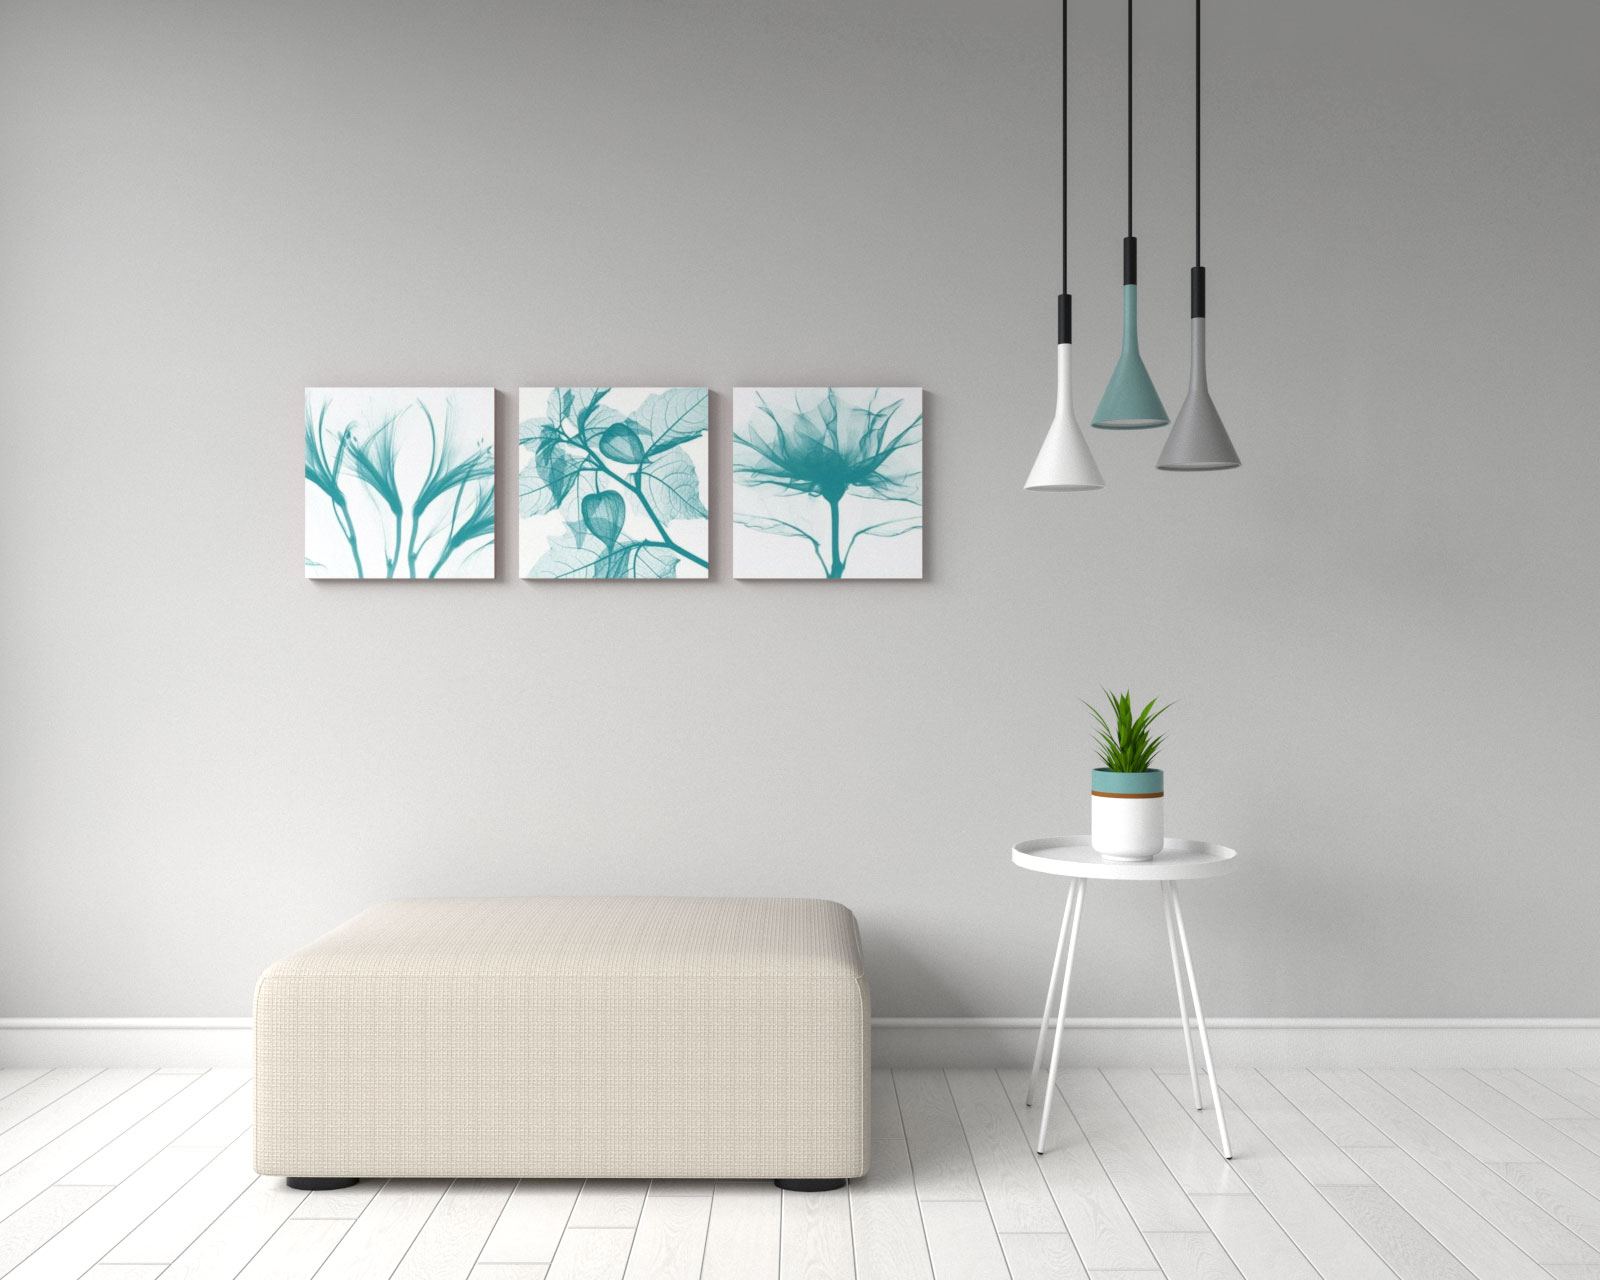 Simple floral white and teal canvas print wall art